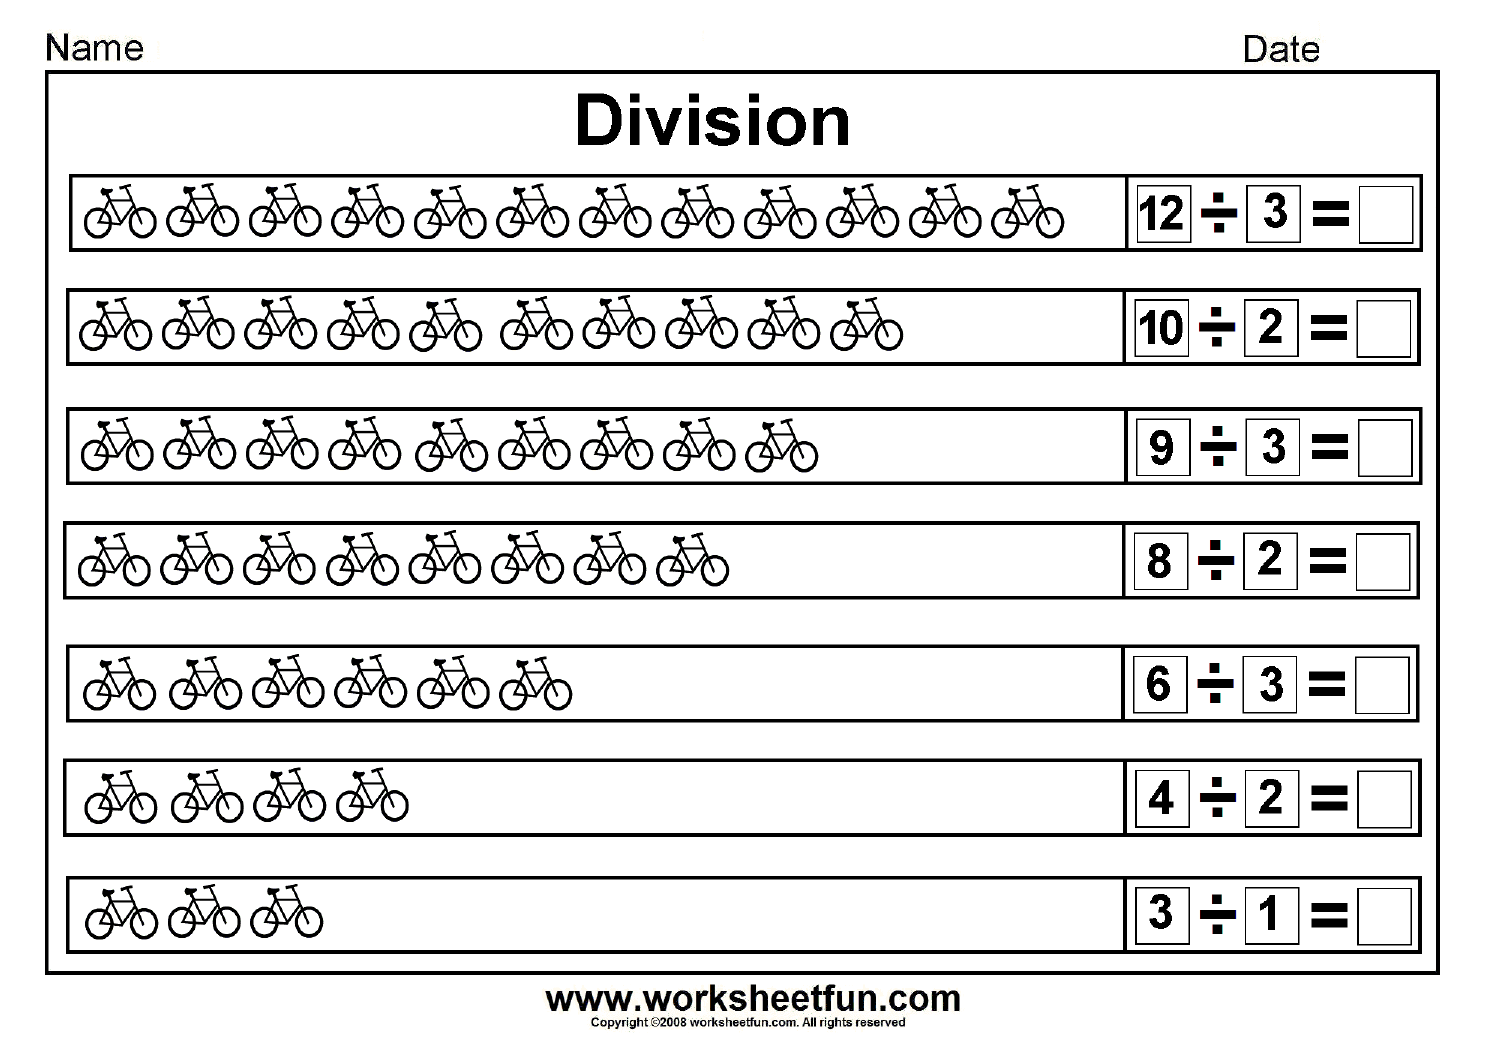 division worksheets on kiddos learning 2nd grade worksheets. Black Bedroom Furniture Sets. Home Design Ideas